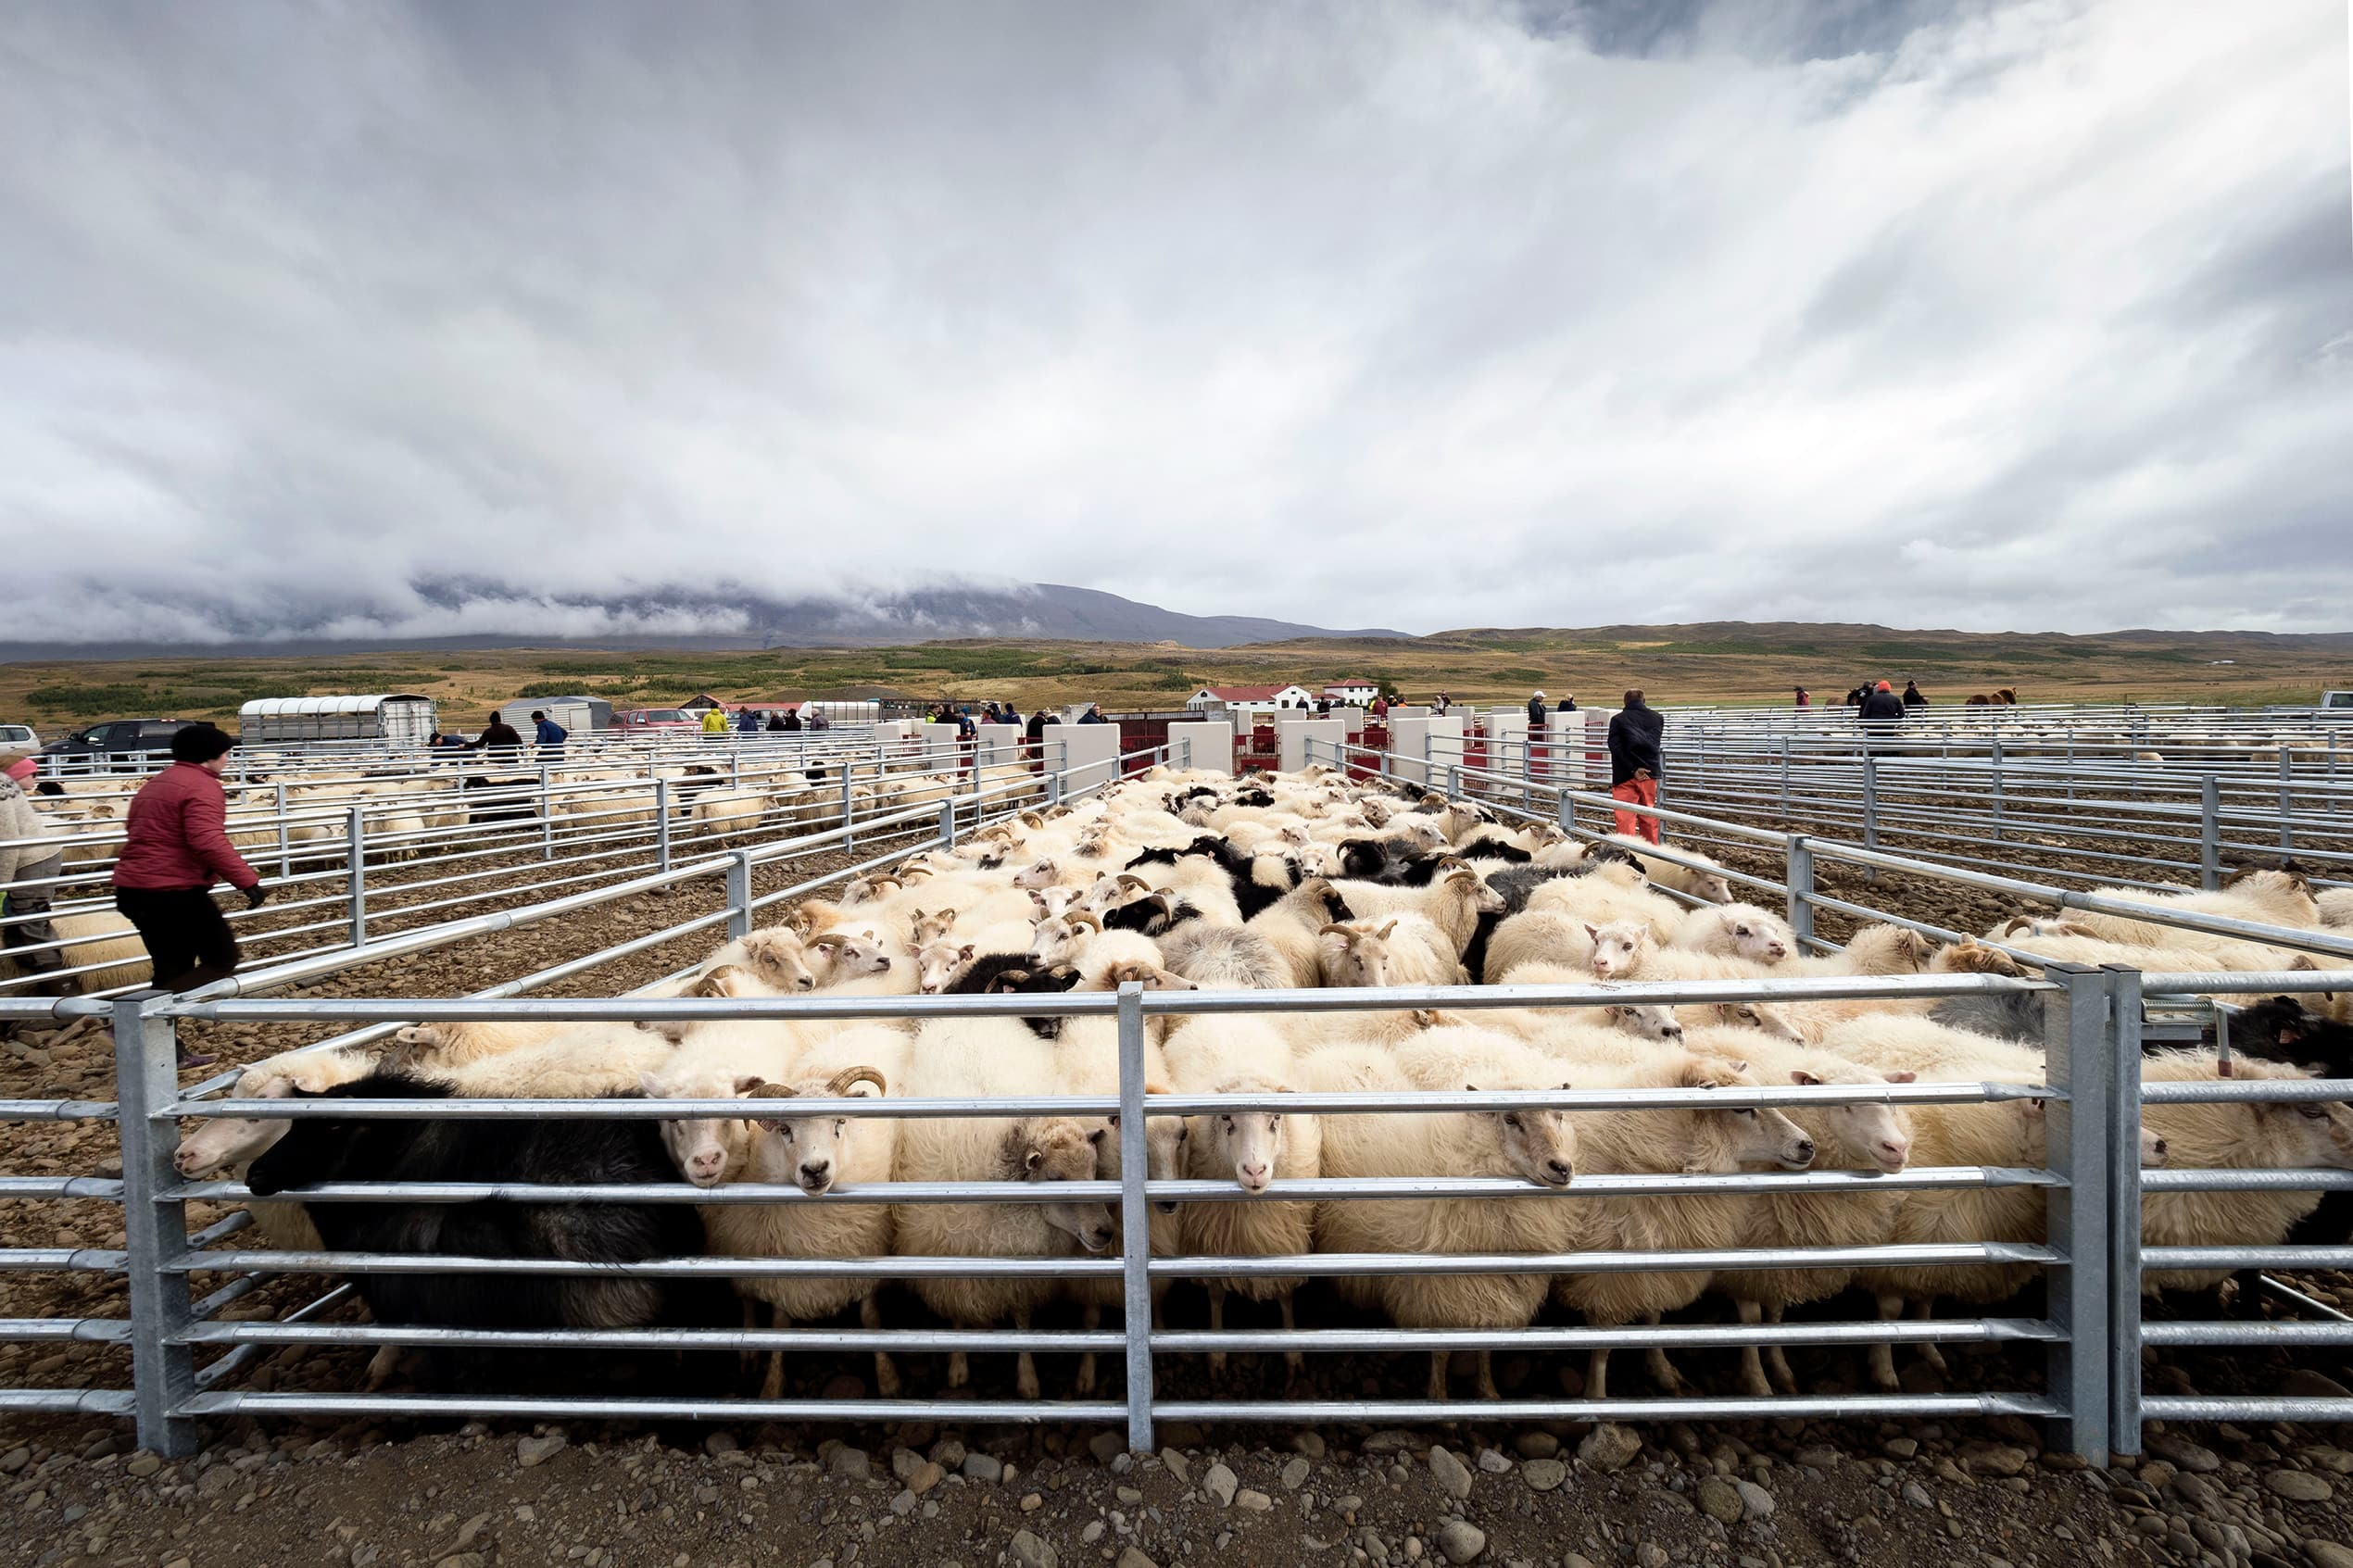 a front on view of sheep being rounded into pens at réttir